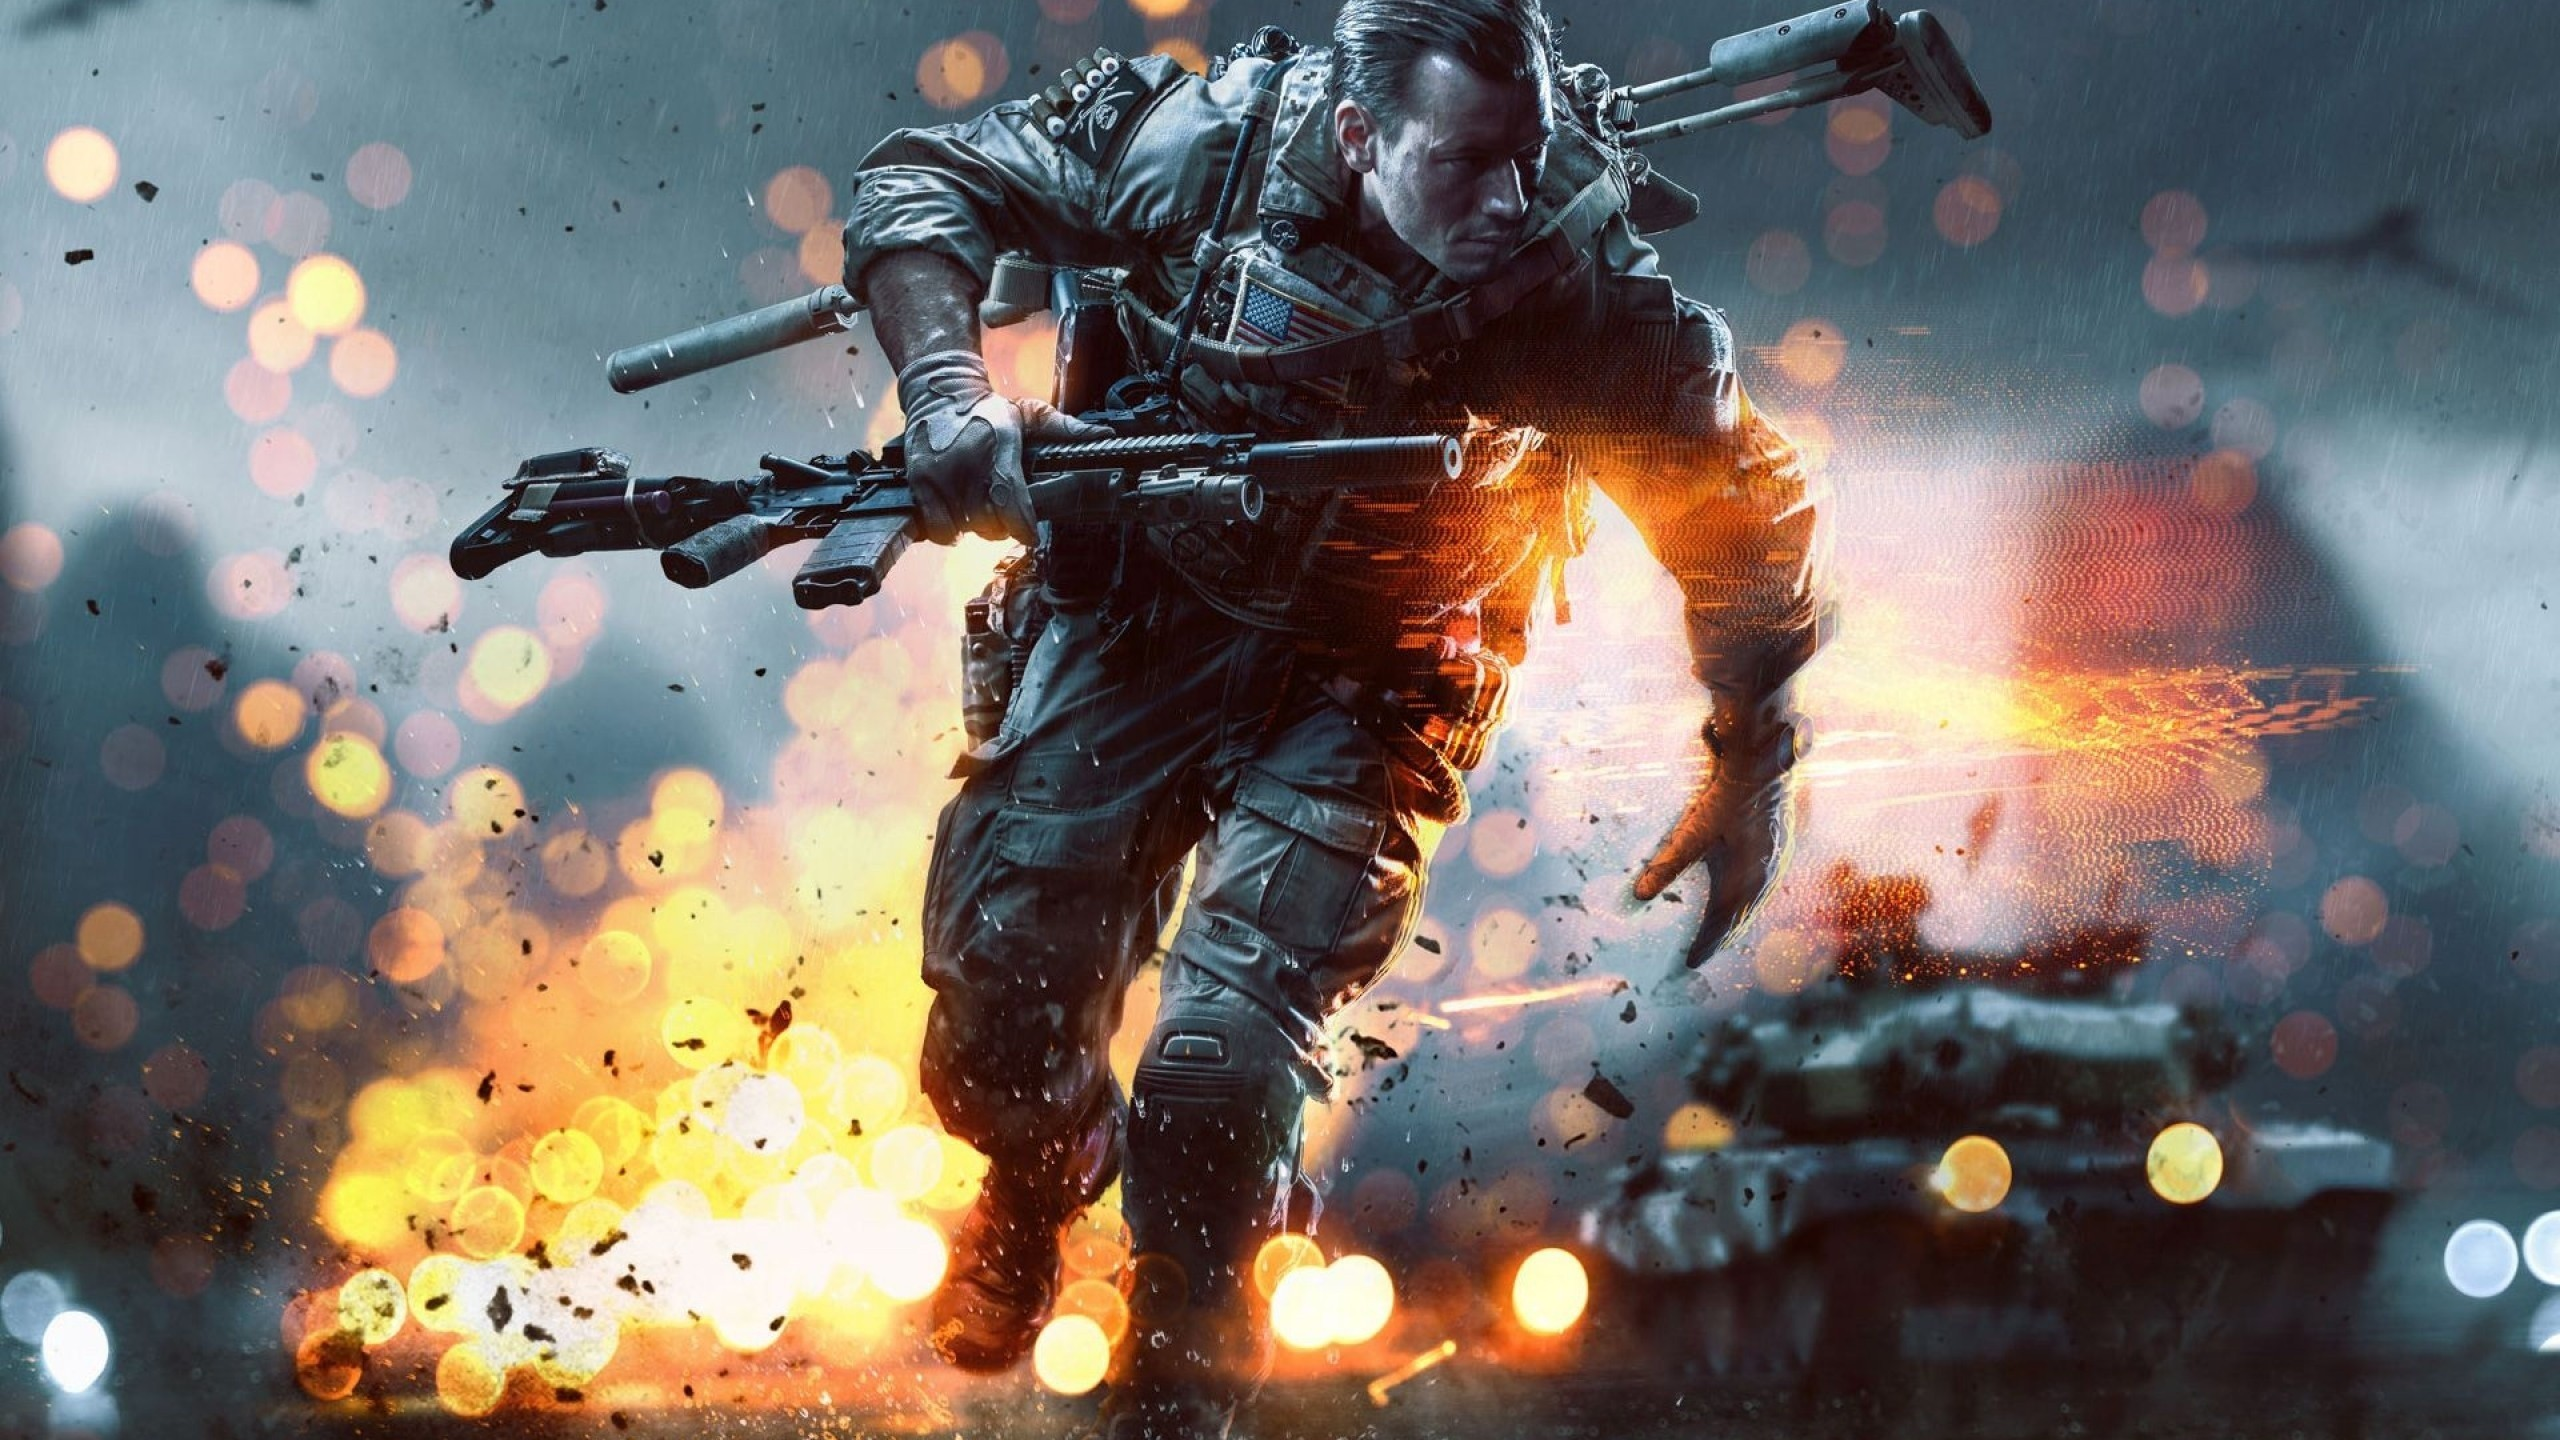 Battlefield 4   China Rising HD Wallpaper 2560x1440 Battlefield 4 2560x1440